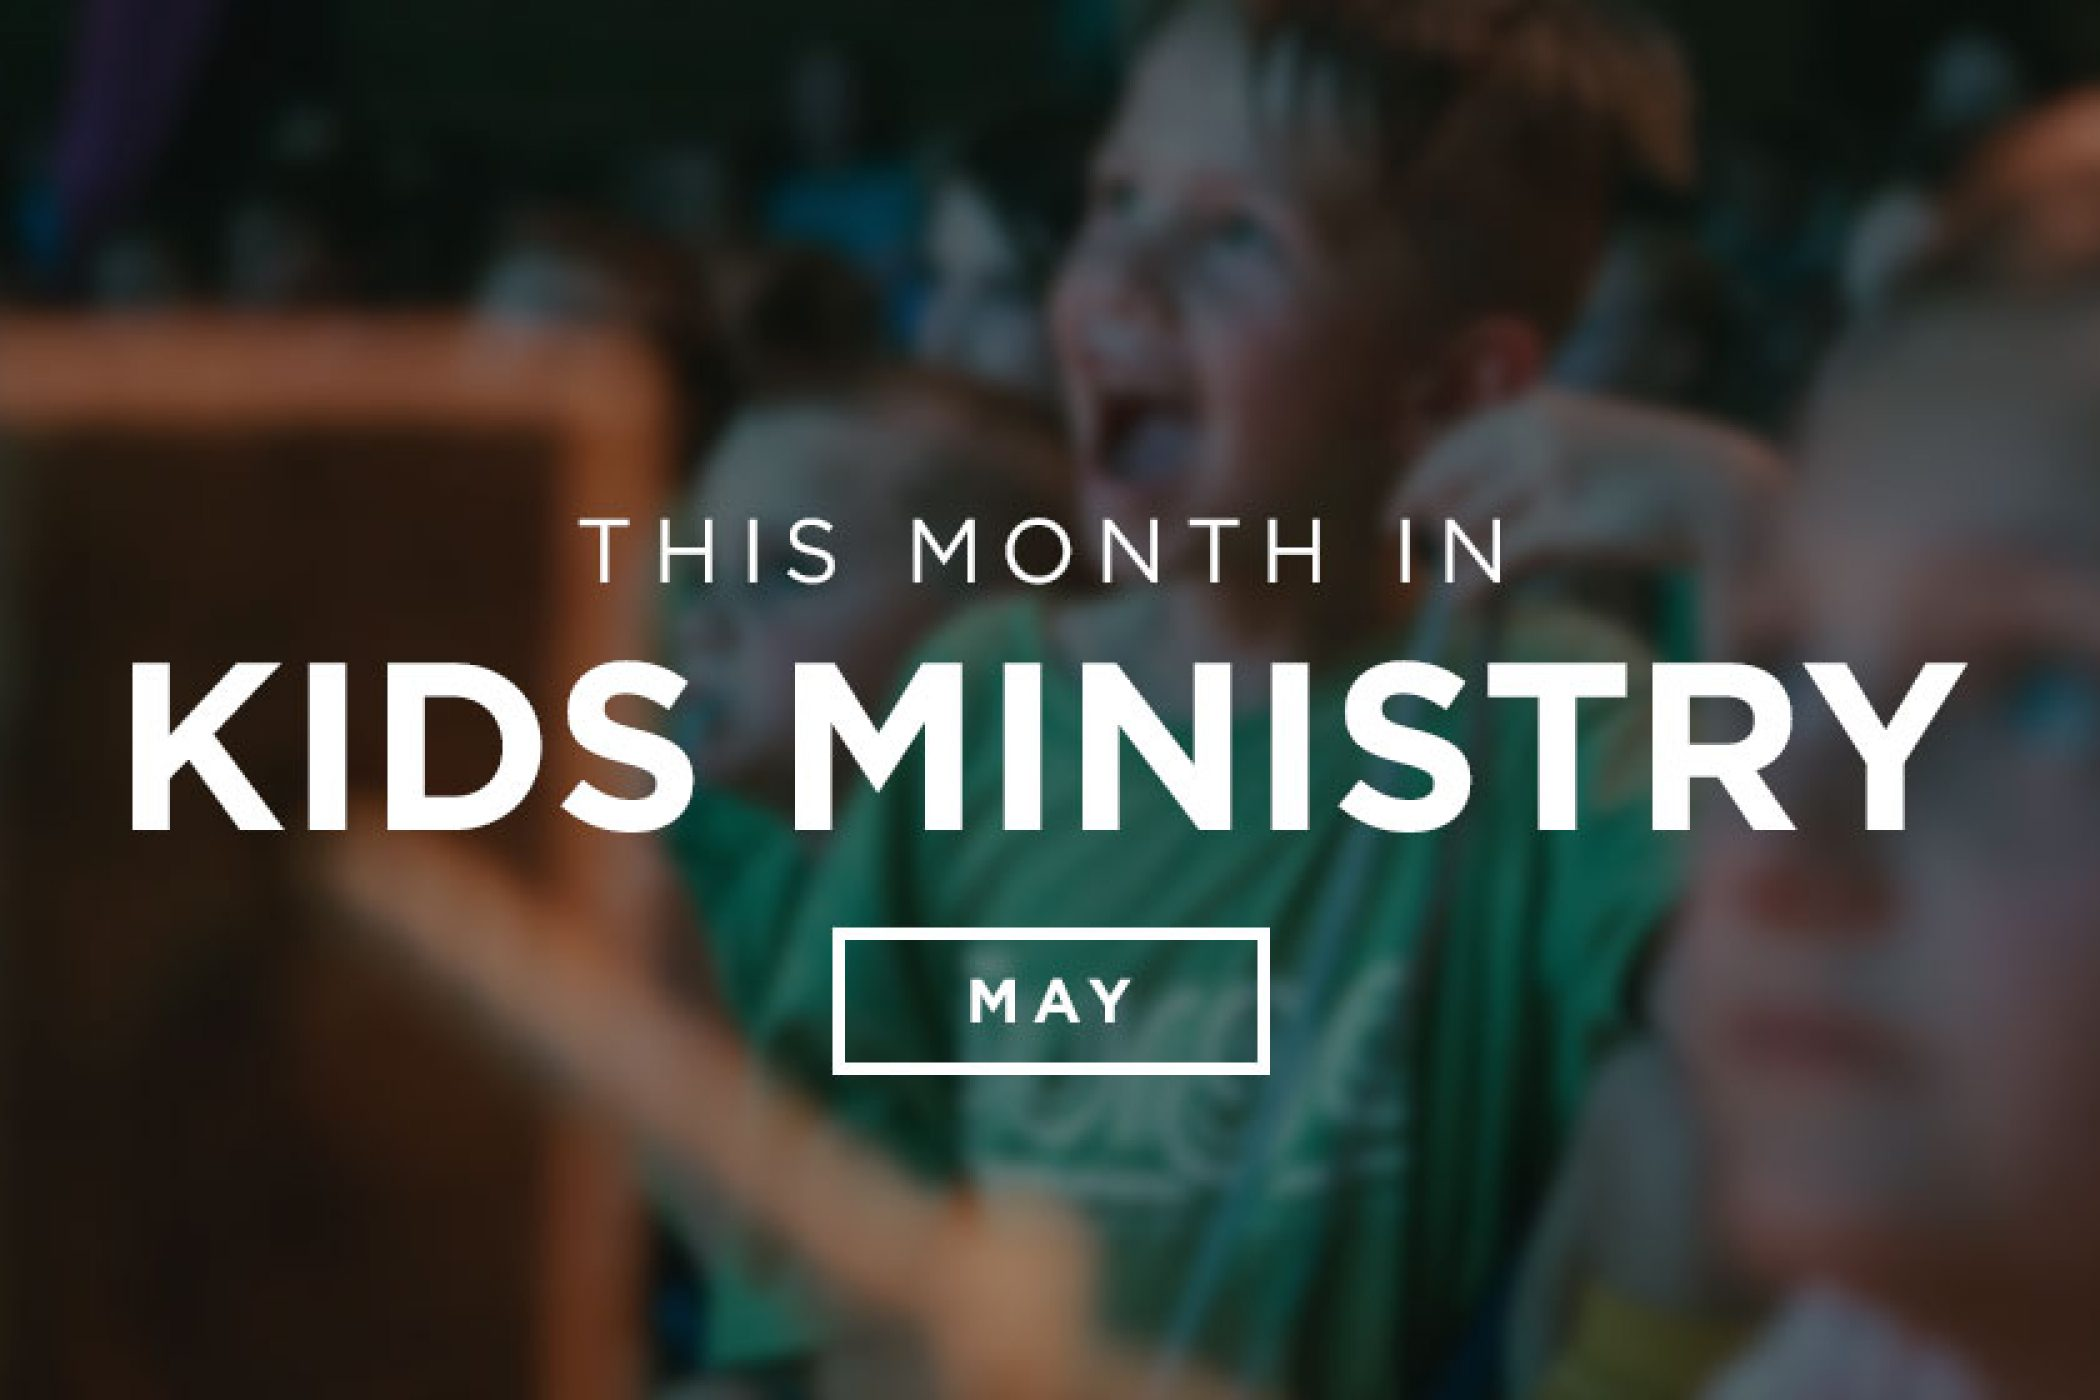 This Month in Kids Ministry - May